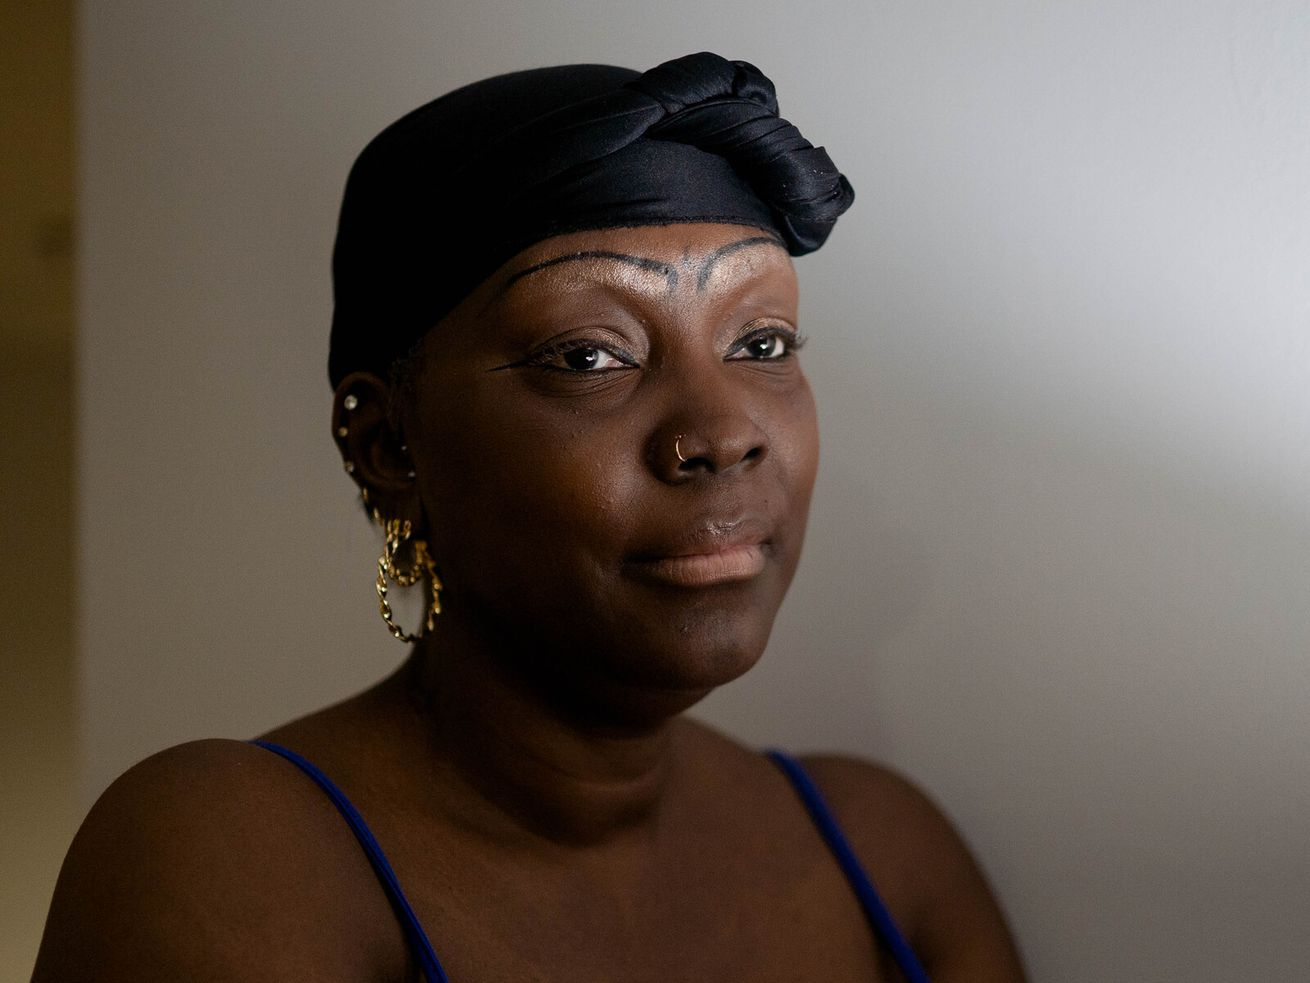 Long delays for justice in Cook County: 'I'm not at peace,' mother of murder victim says.